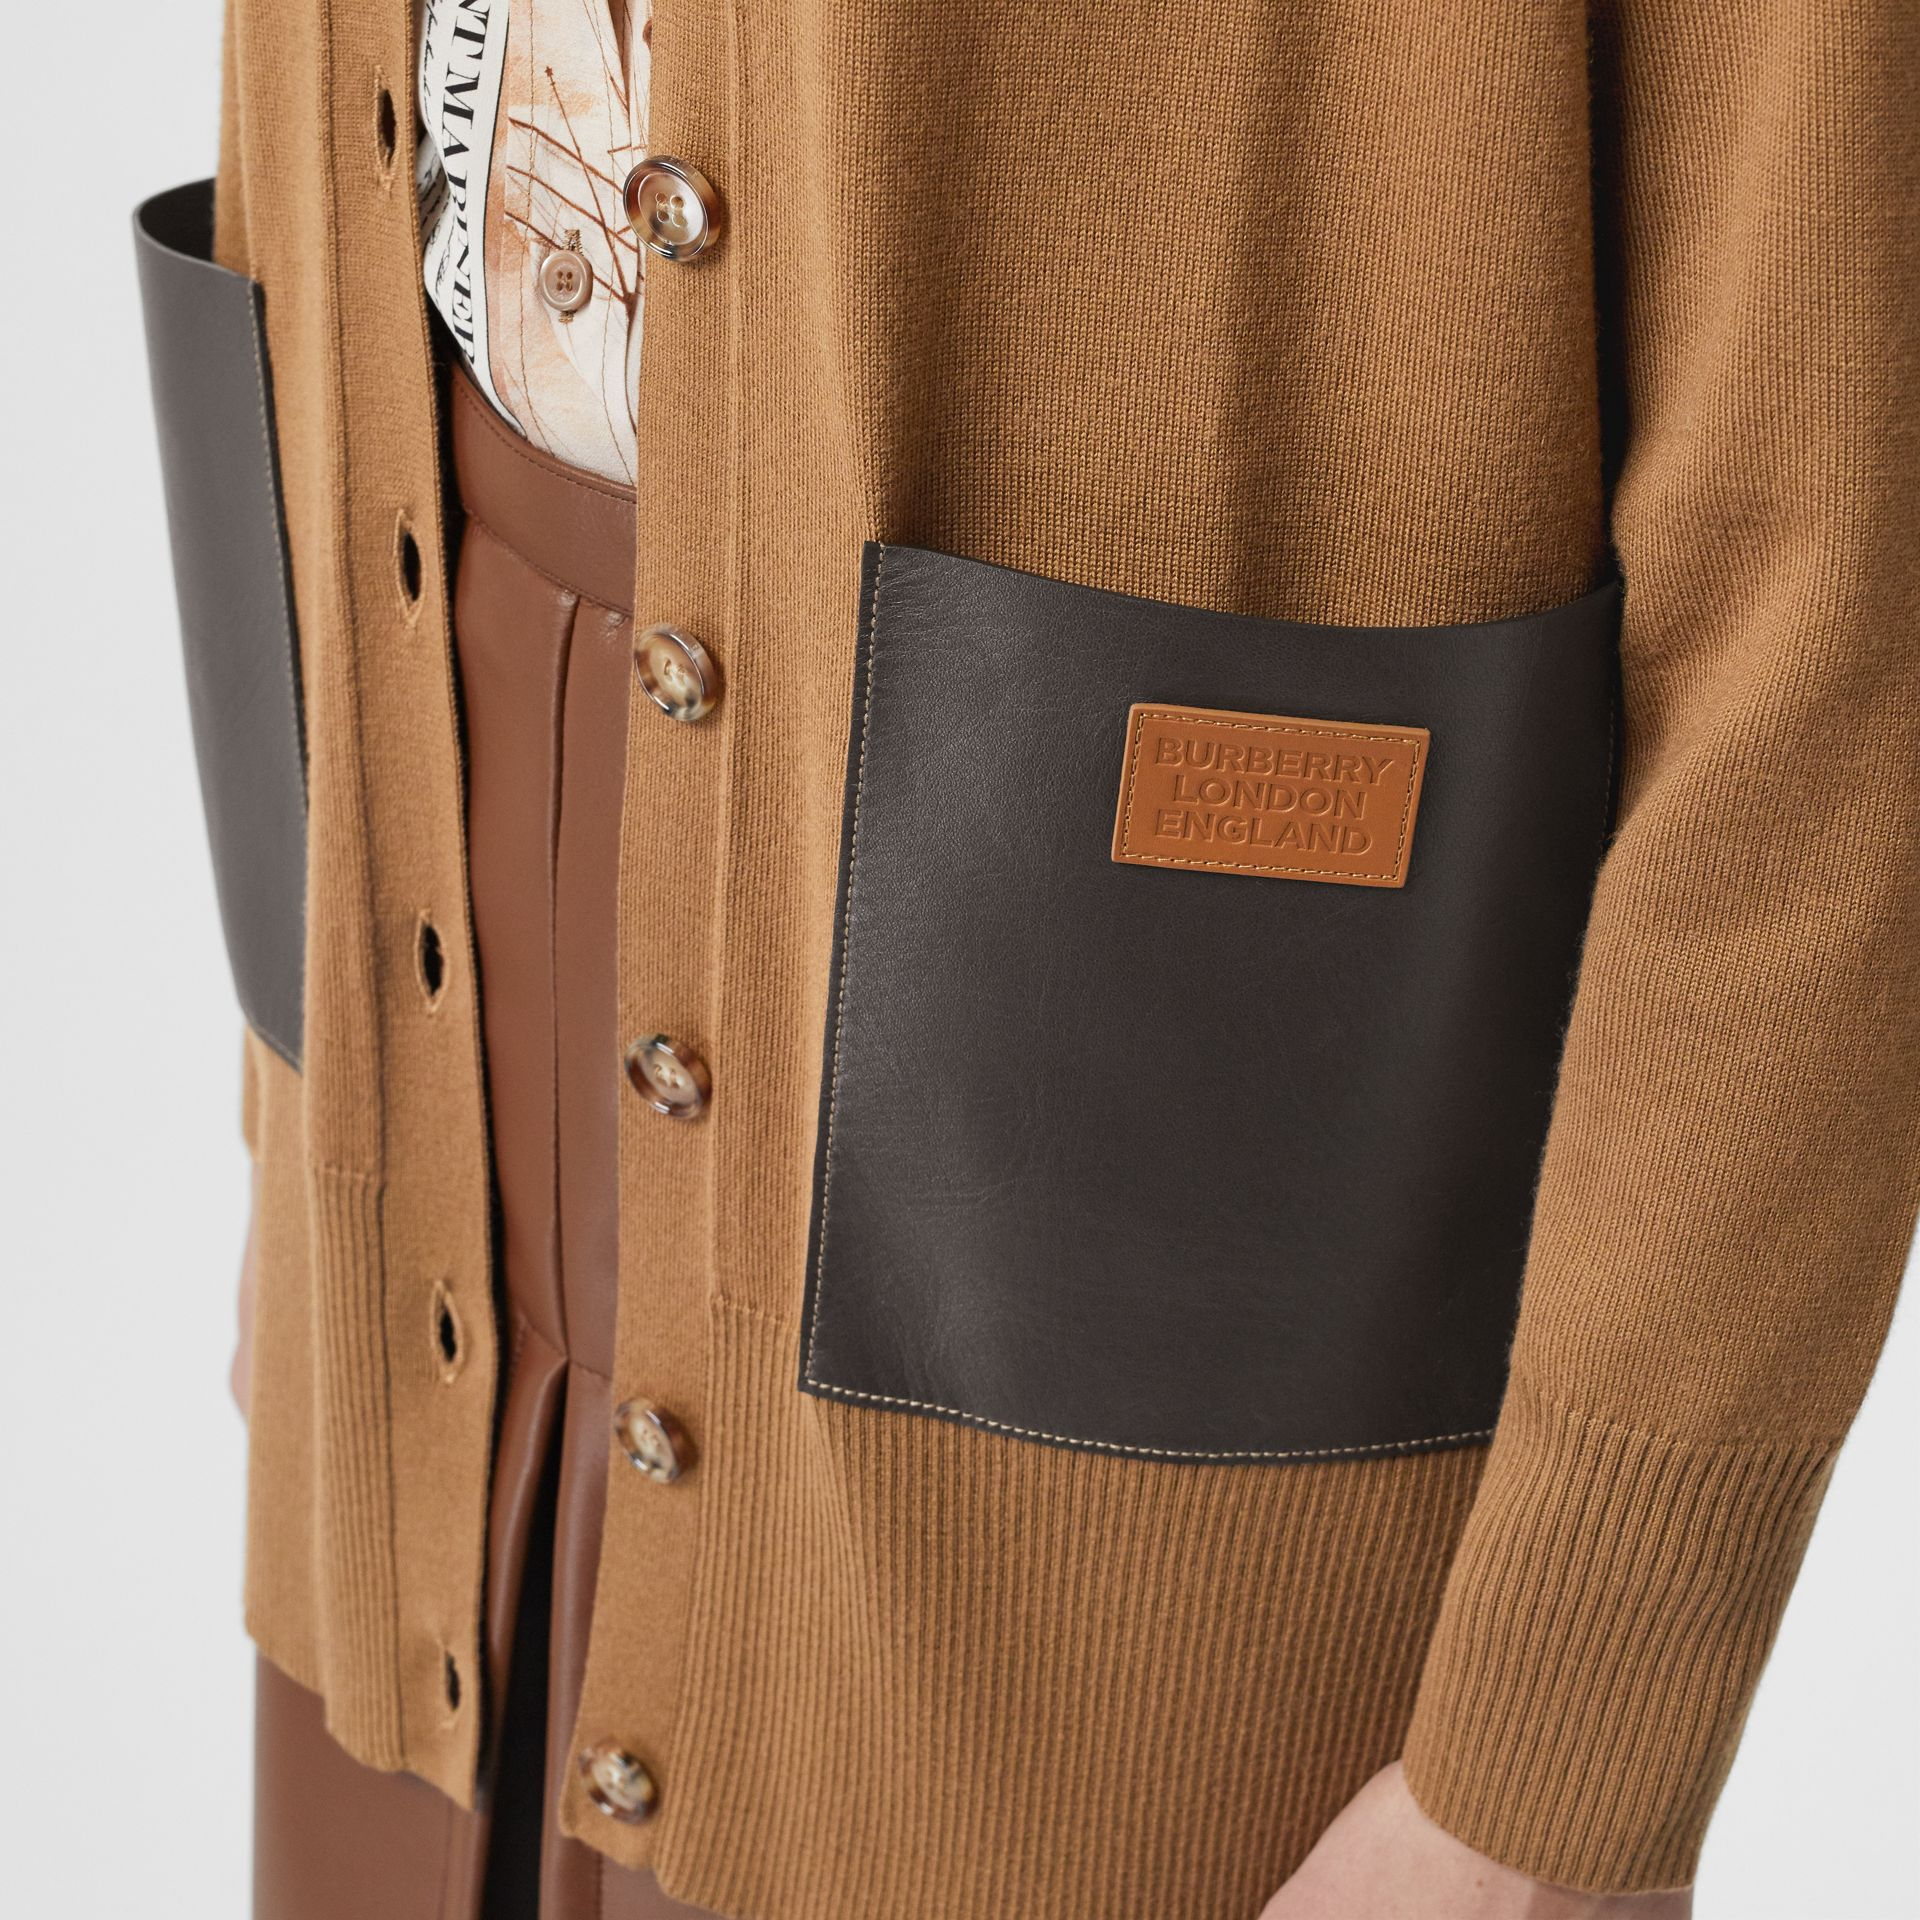 Lambskin Pocket Merino Wool Cardigan in Warm Walnut - Women | Burberry Hong Kong S.A.R - gallery image 4